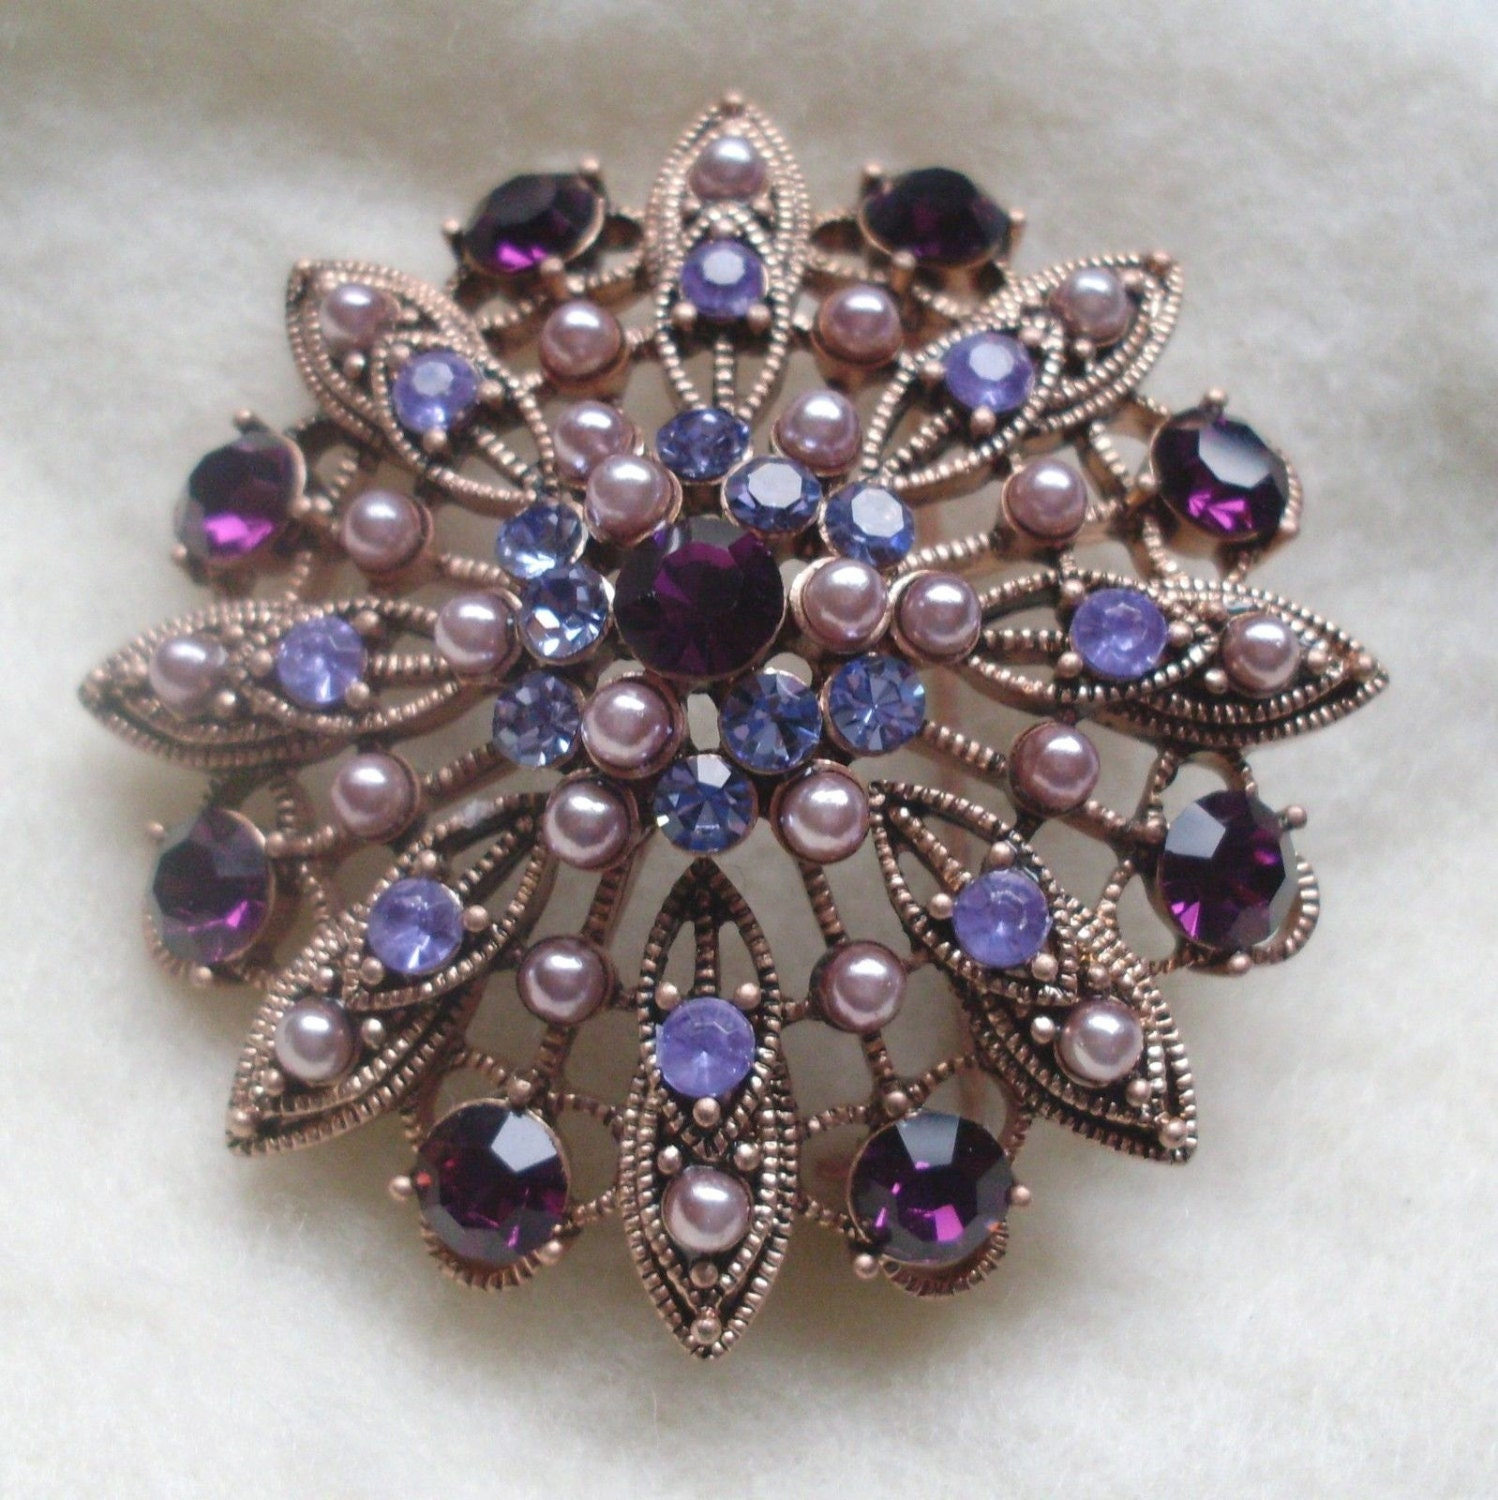 Vintage LIZ CLAIBORNE Purple and Lavender Rhinestone Faux Pearl Domed Antiqued Gold Filigree Brooch Pin Jewelry Gift - MemawsTopDrawer